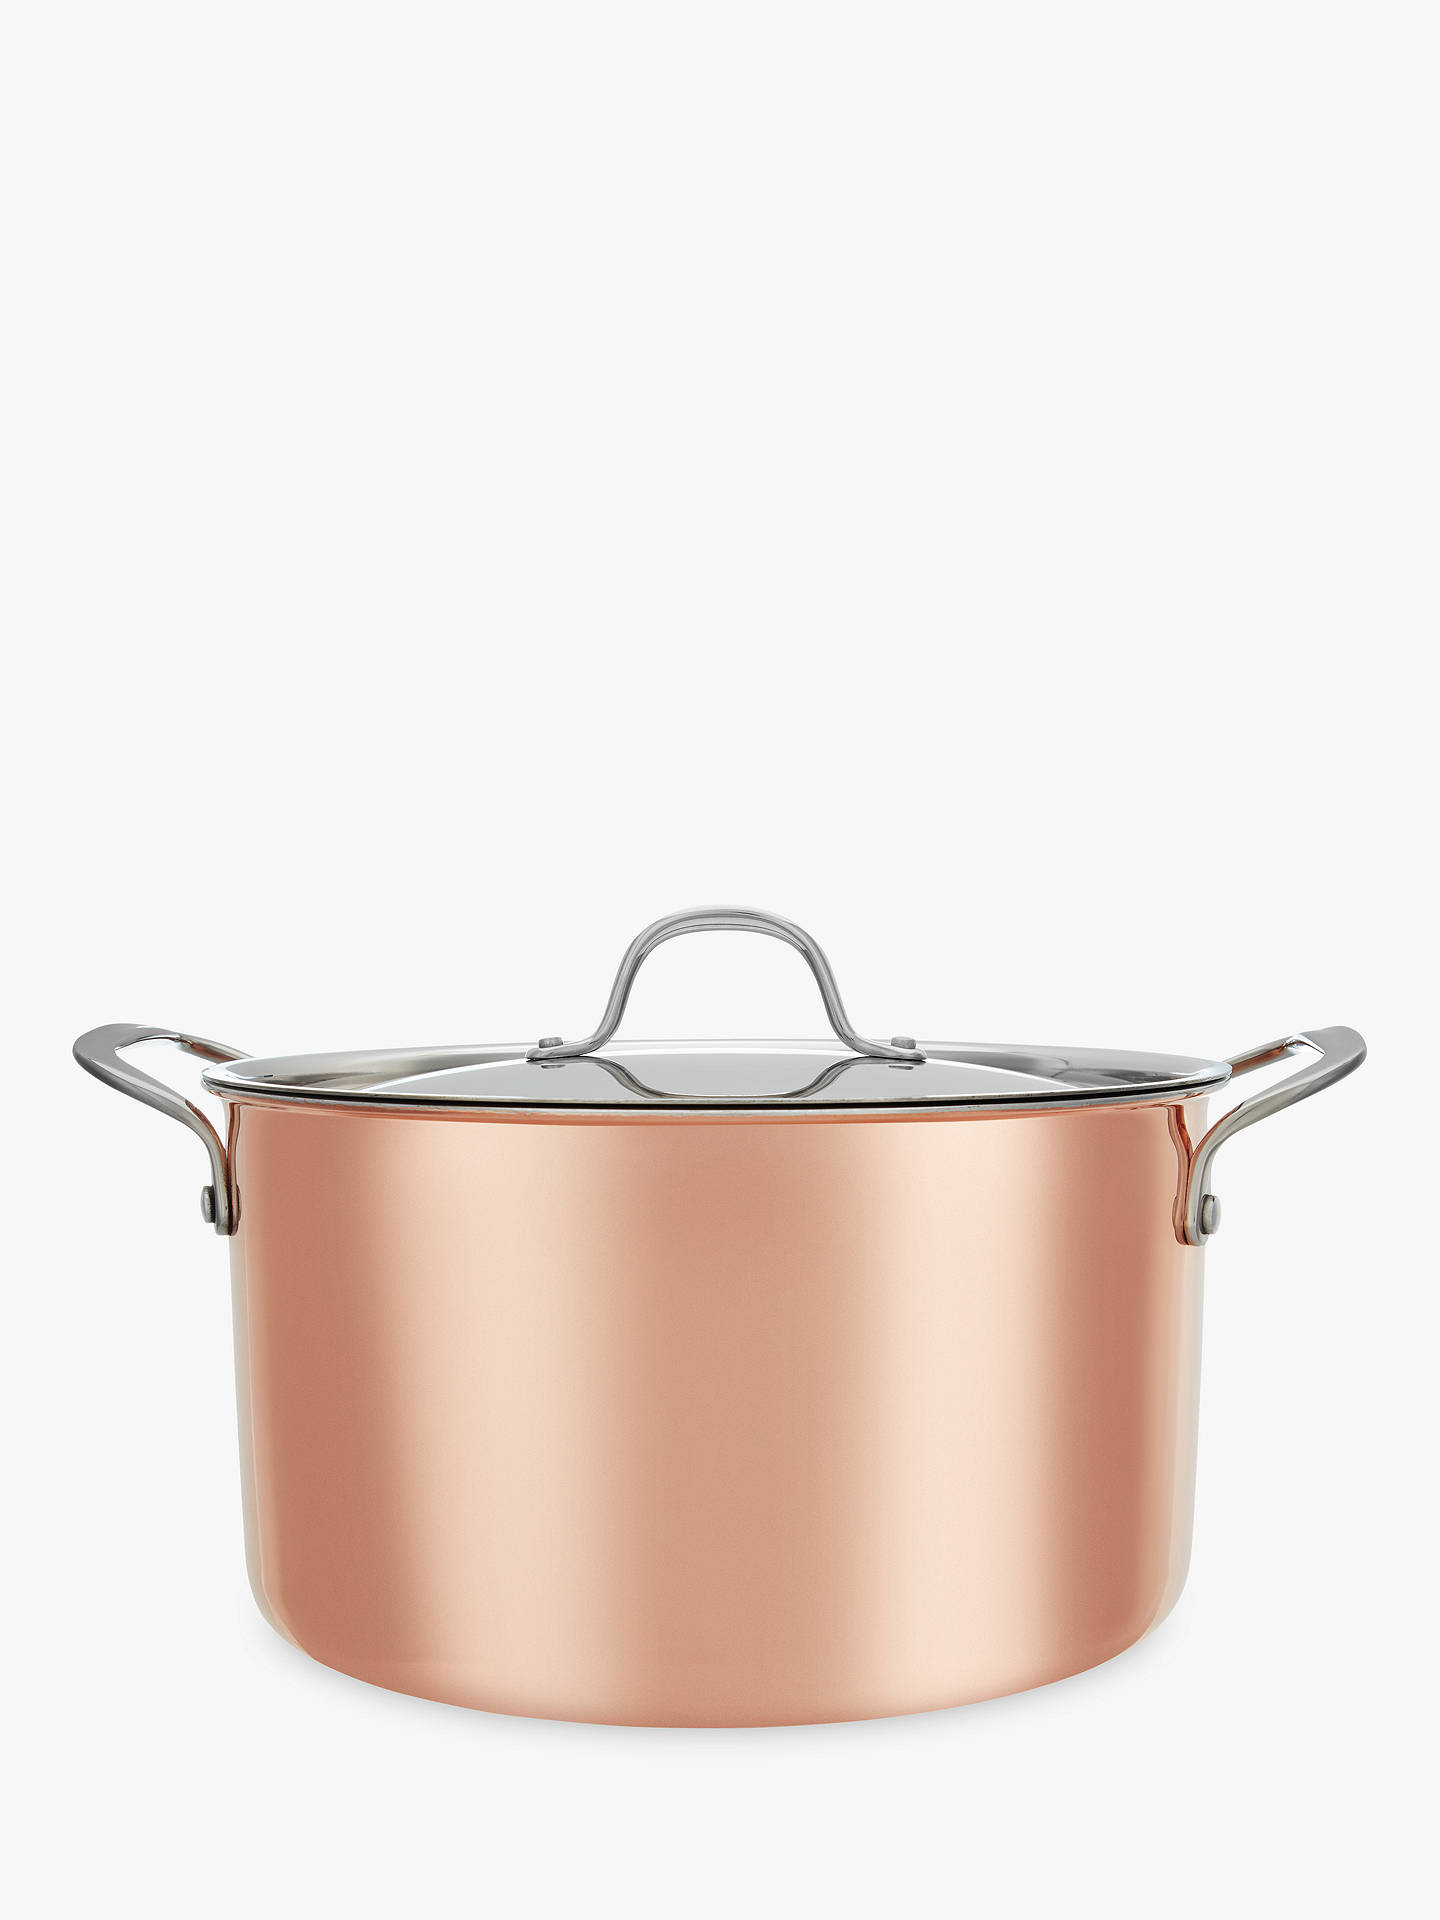 BuyCroft Collection Copper Casserole Dish, 24cm Online at johnlewis.com